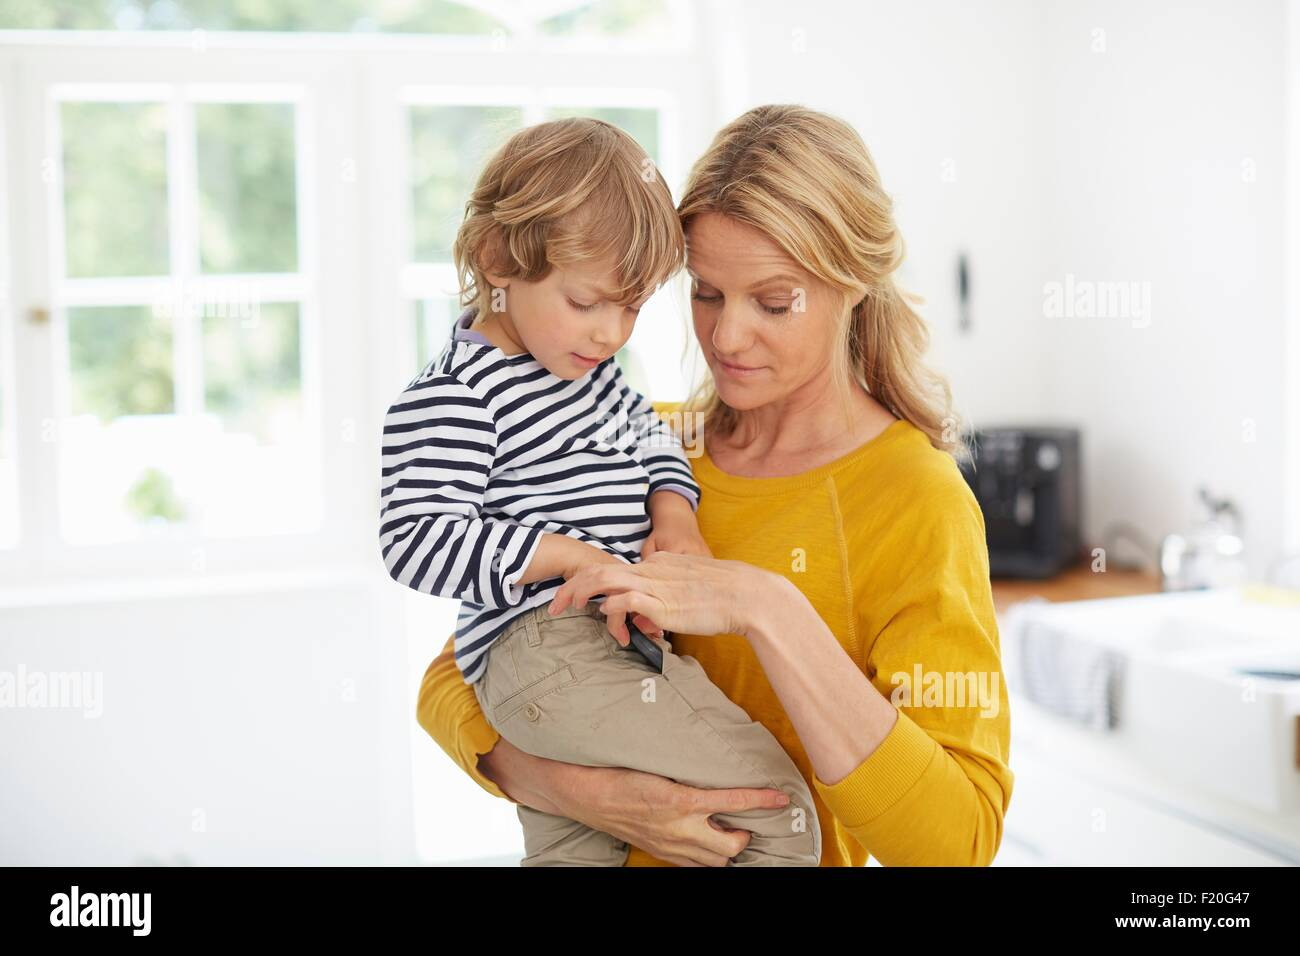 Mother carrying son in kitchen - Stock Image